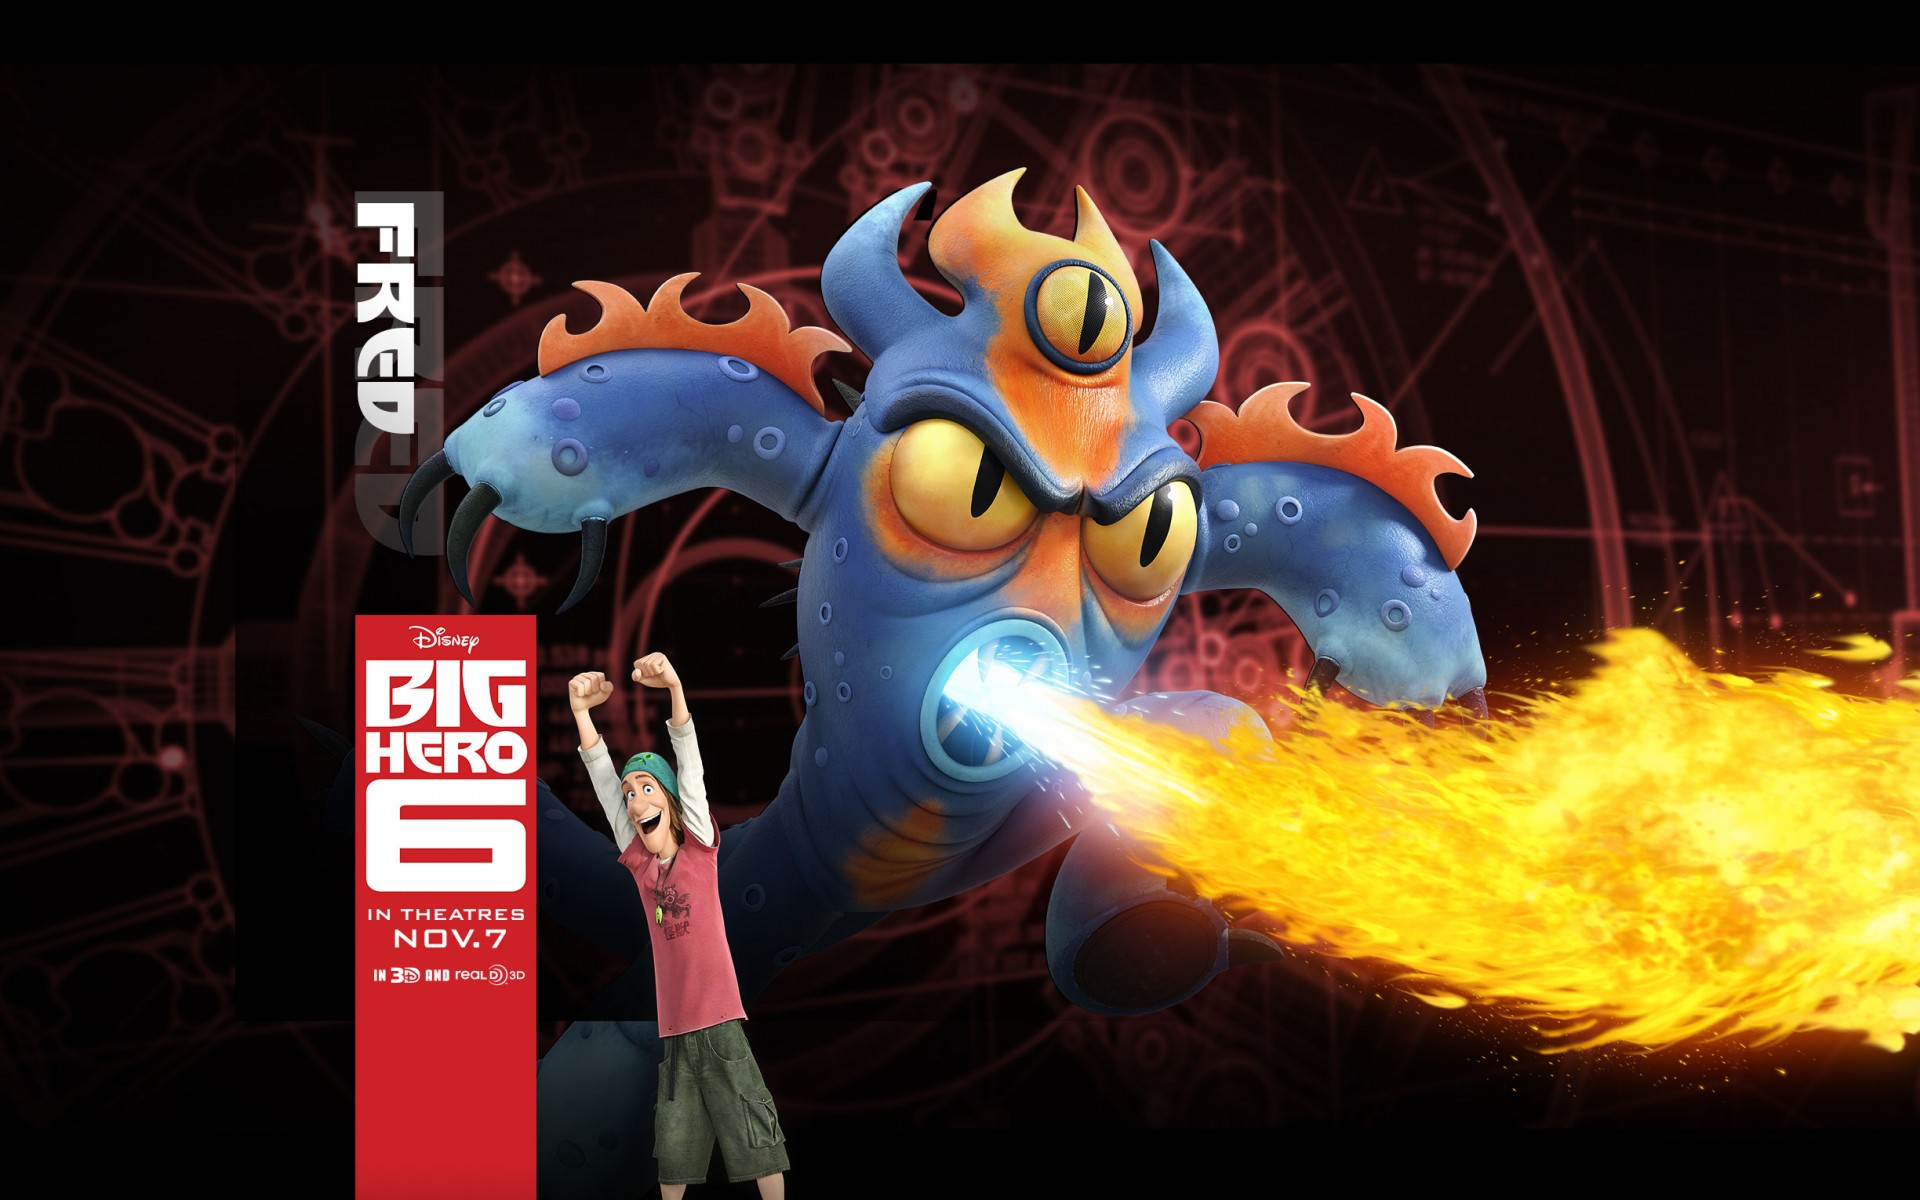 Big Hero 6 Wallpapers, Pictures, Images